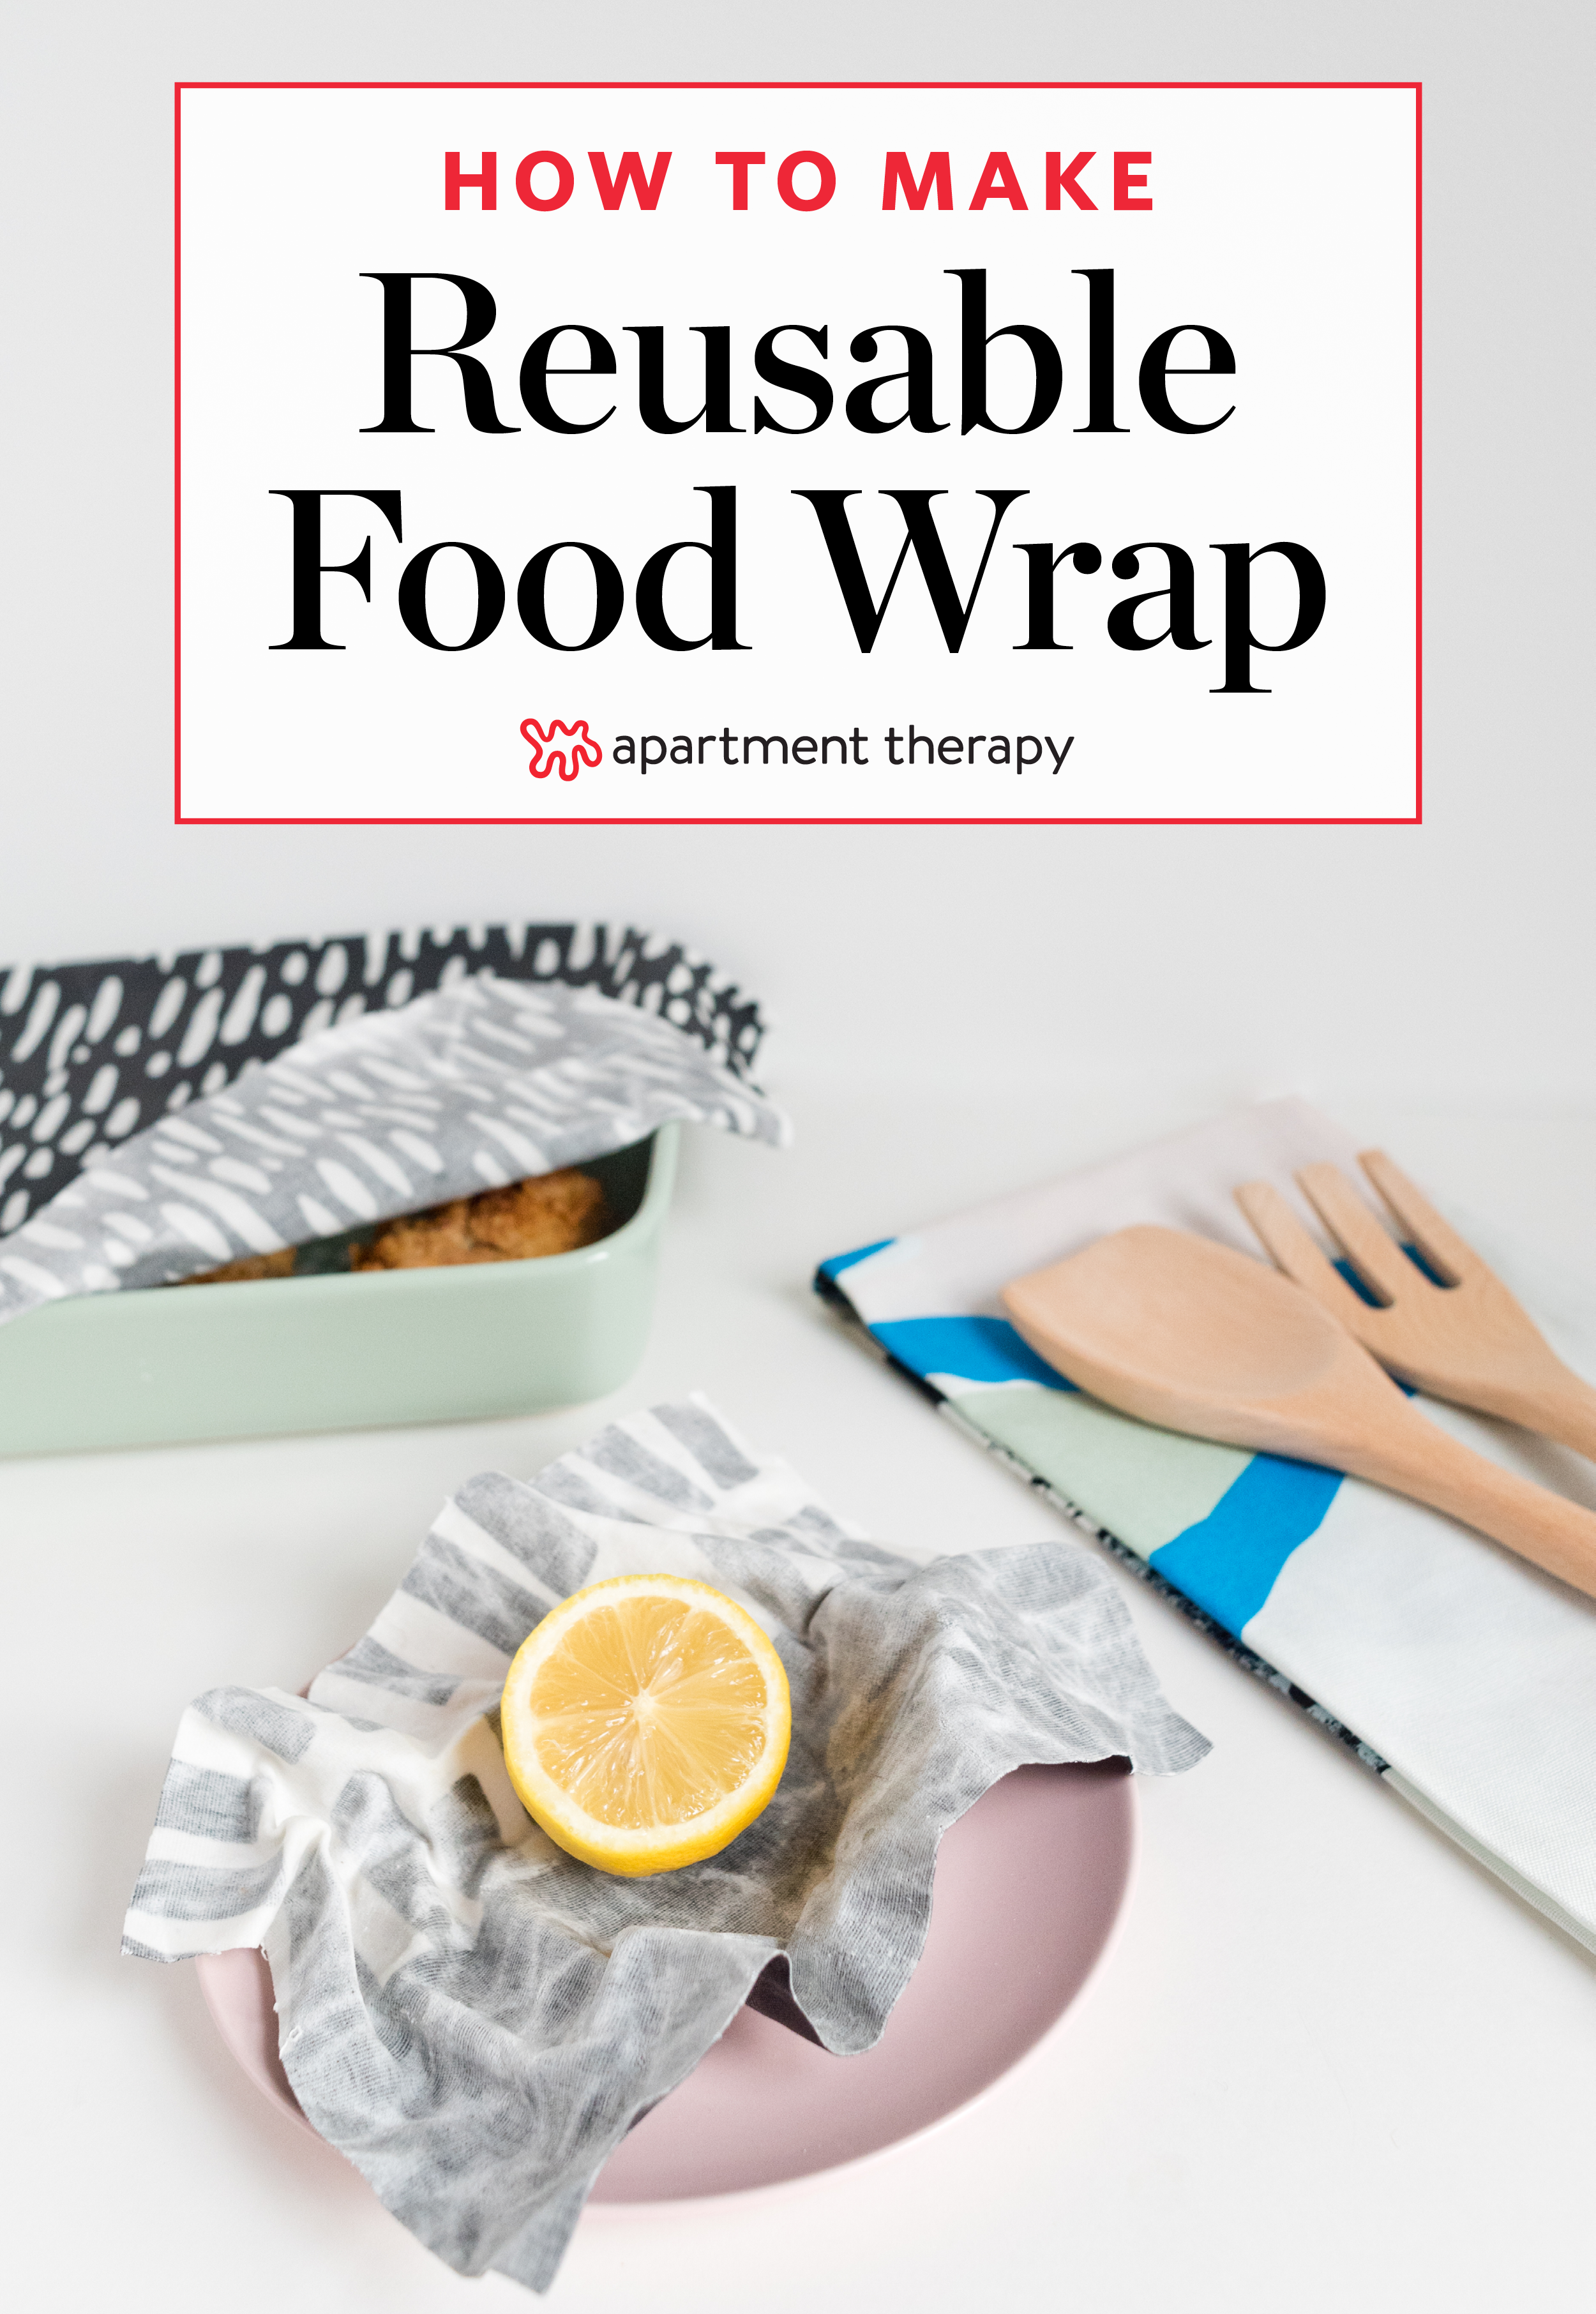 I (Sort Of) Replaced My Plastic Wrap With Reusable Fabric